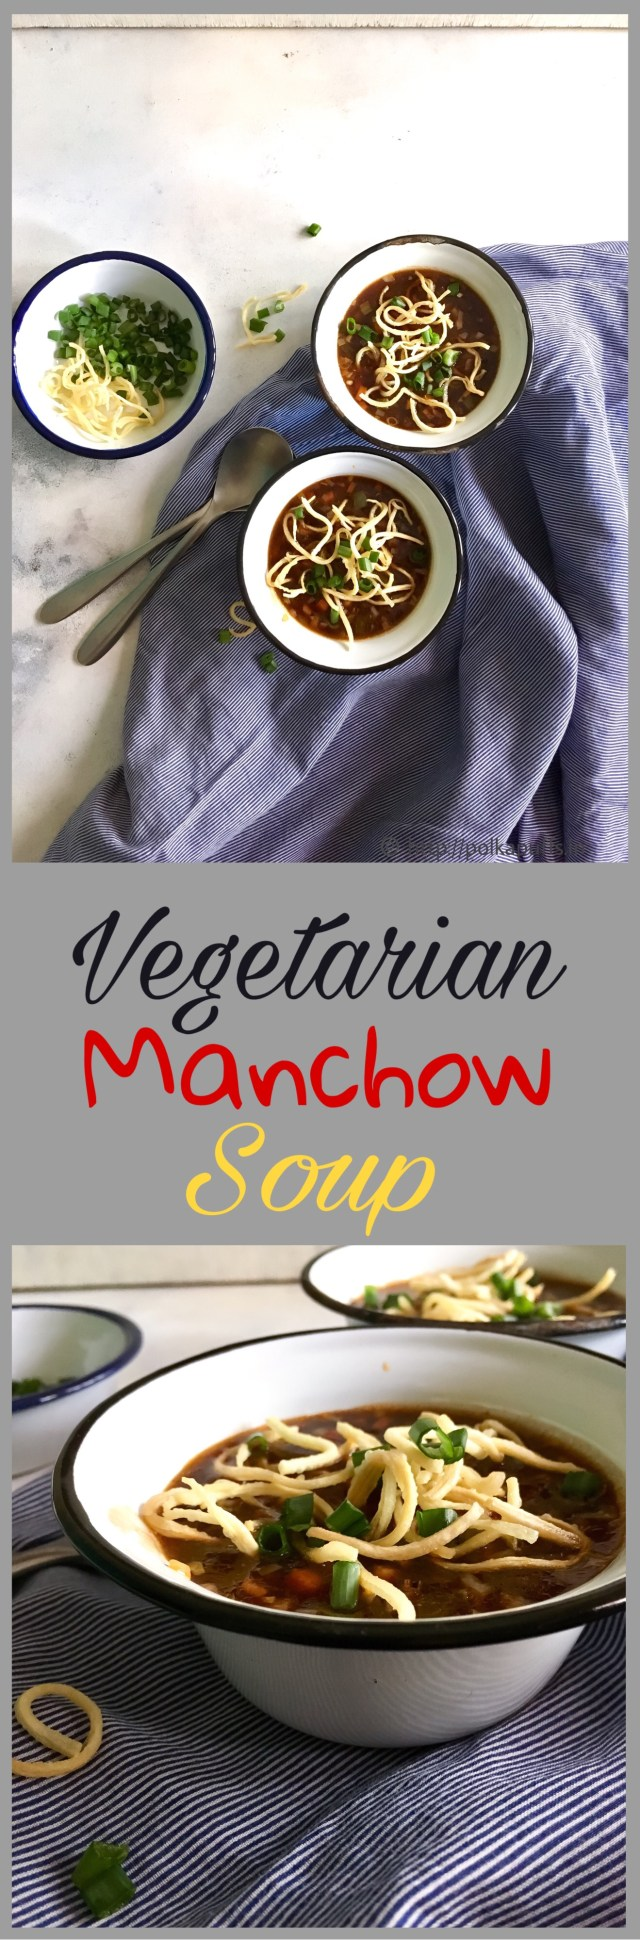 Vegetable Manchow Soup | Restaurant Style Manchow Soup Recipe